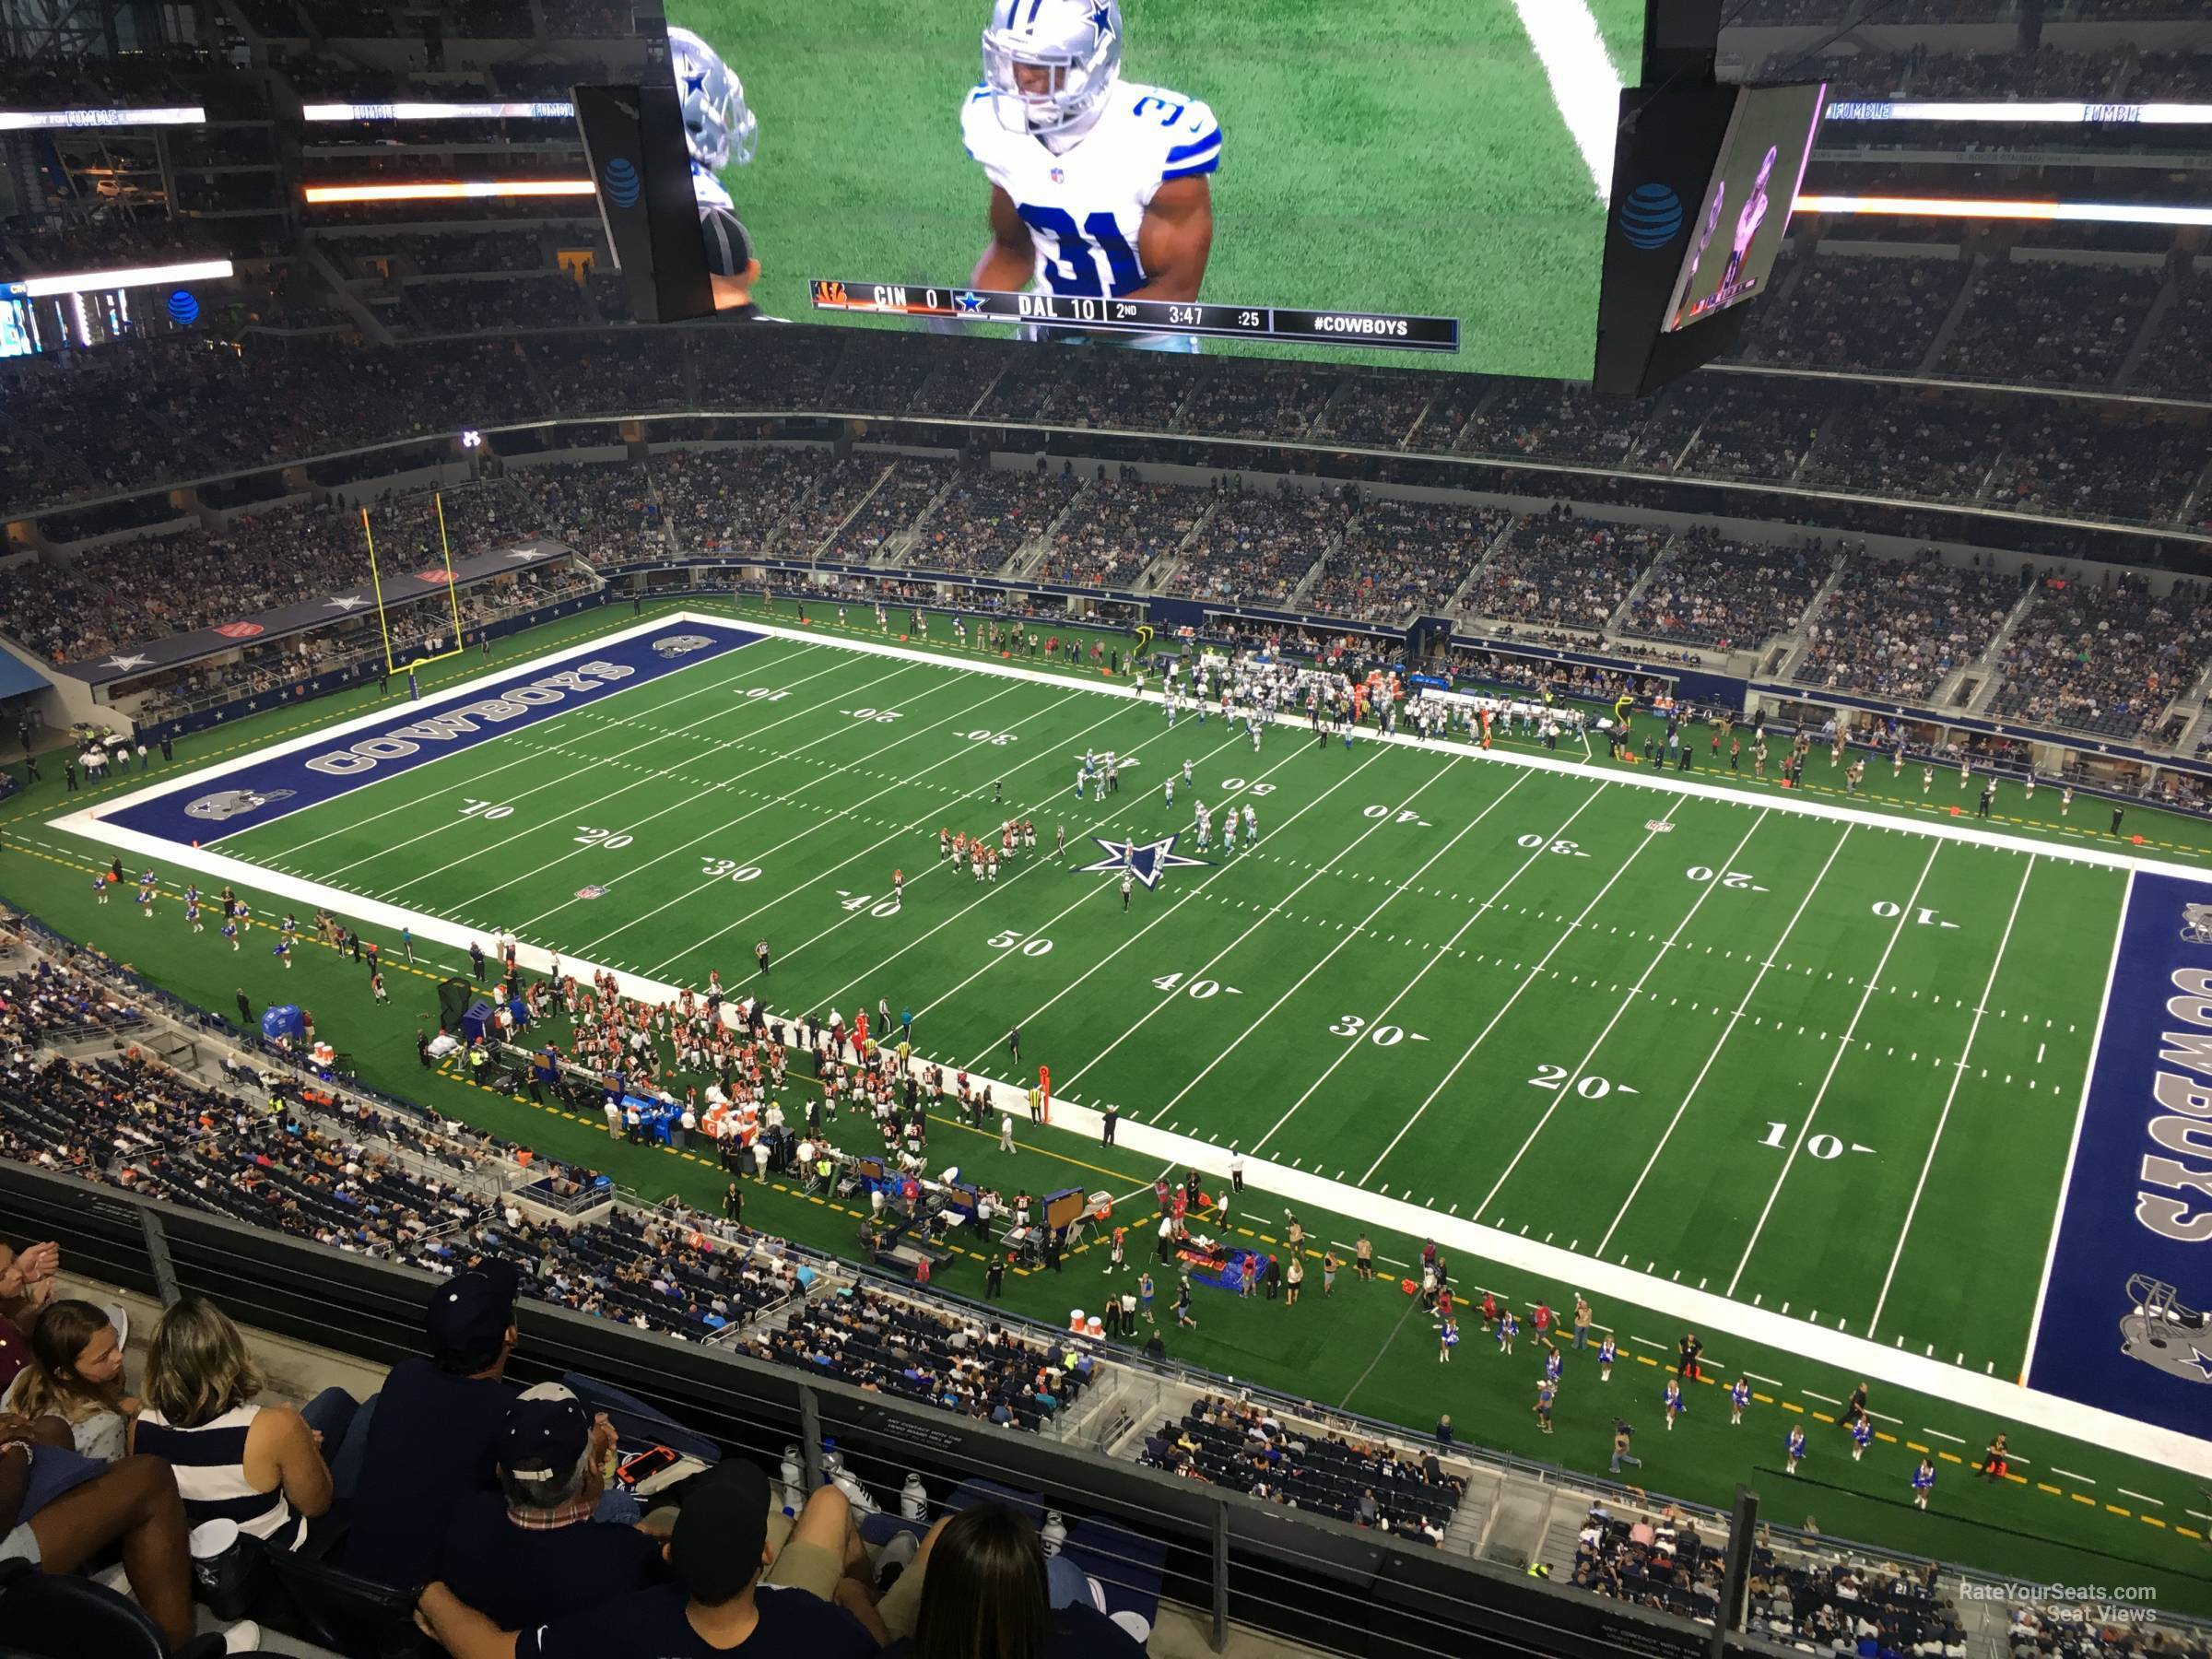 Section 439 seat view